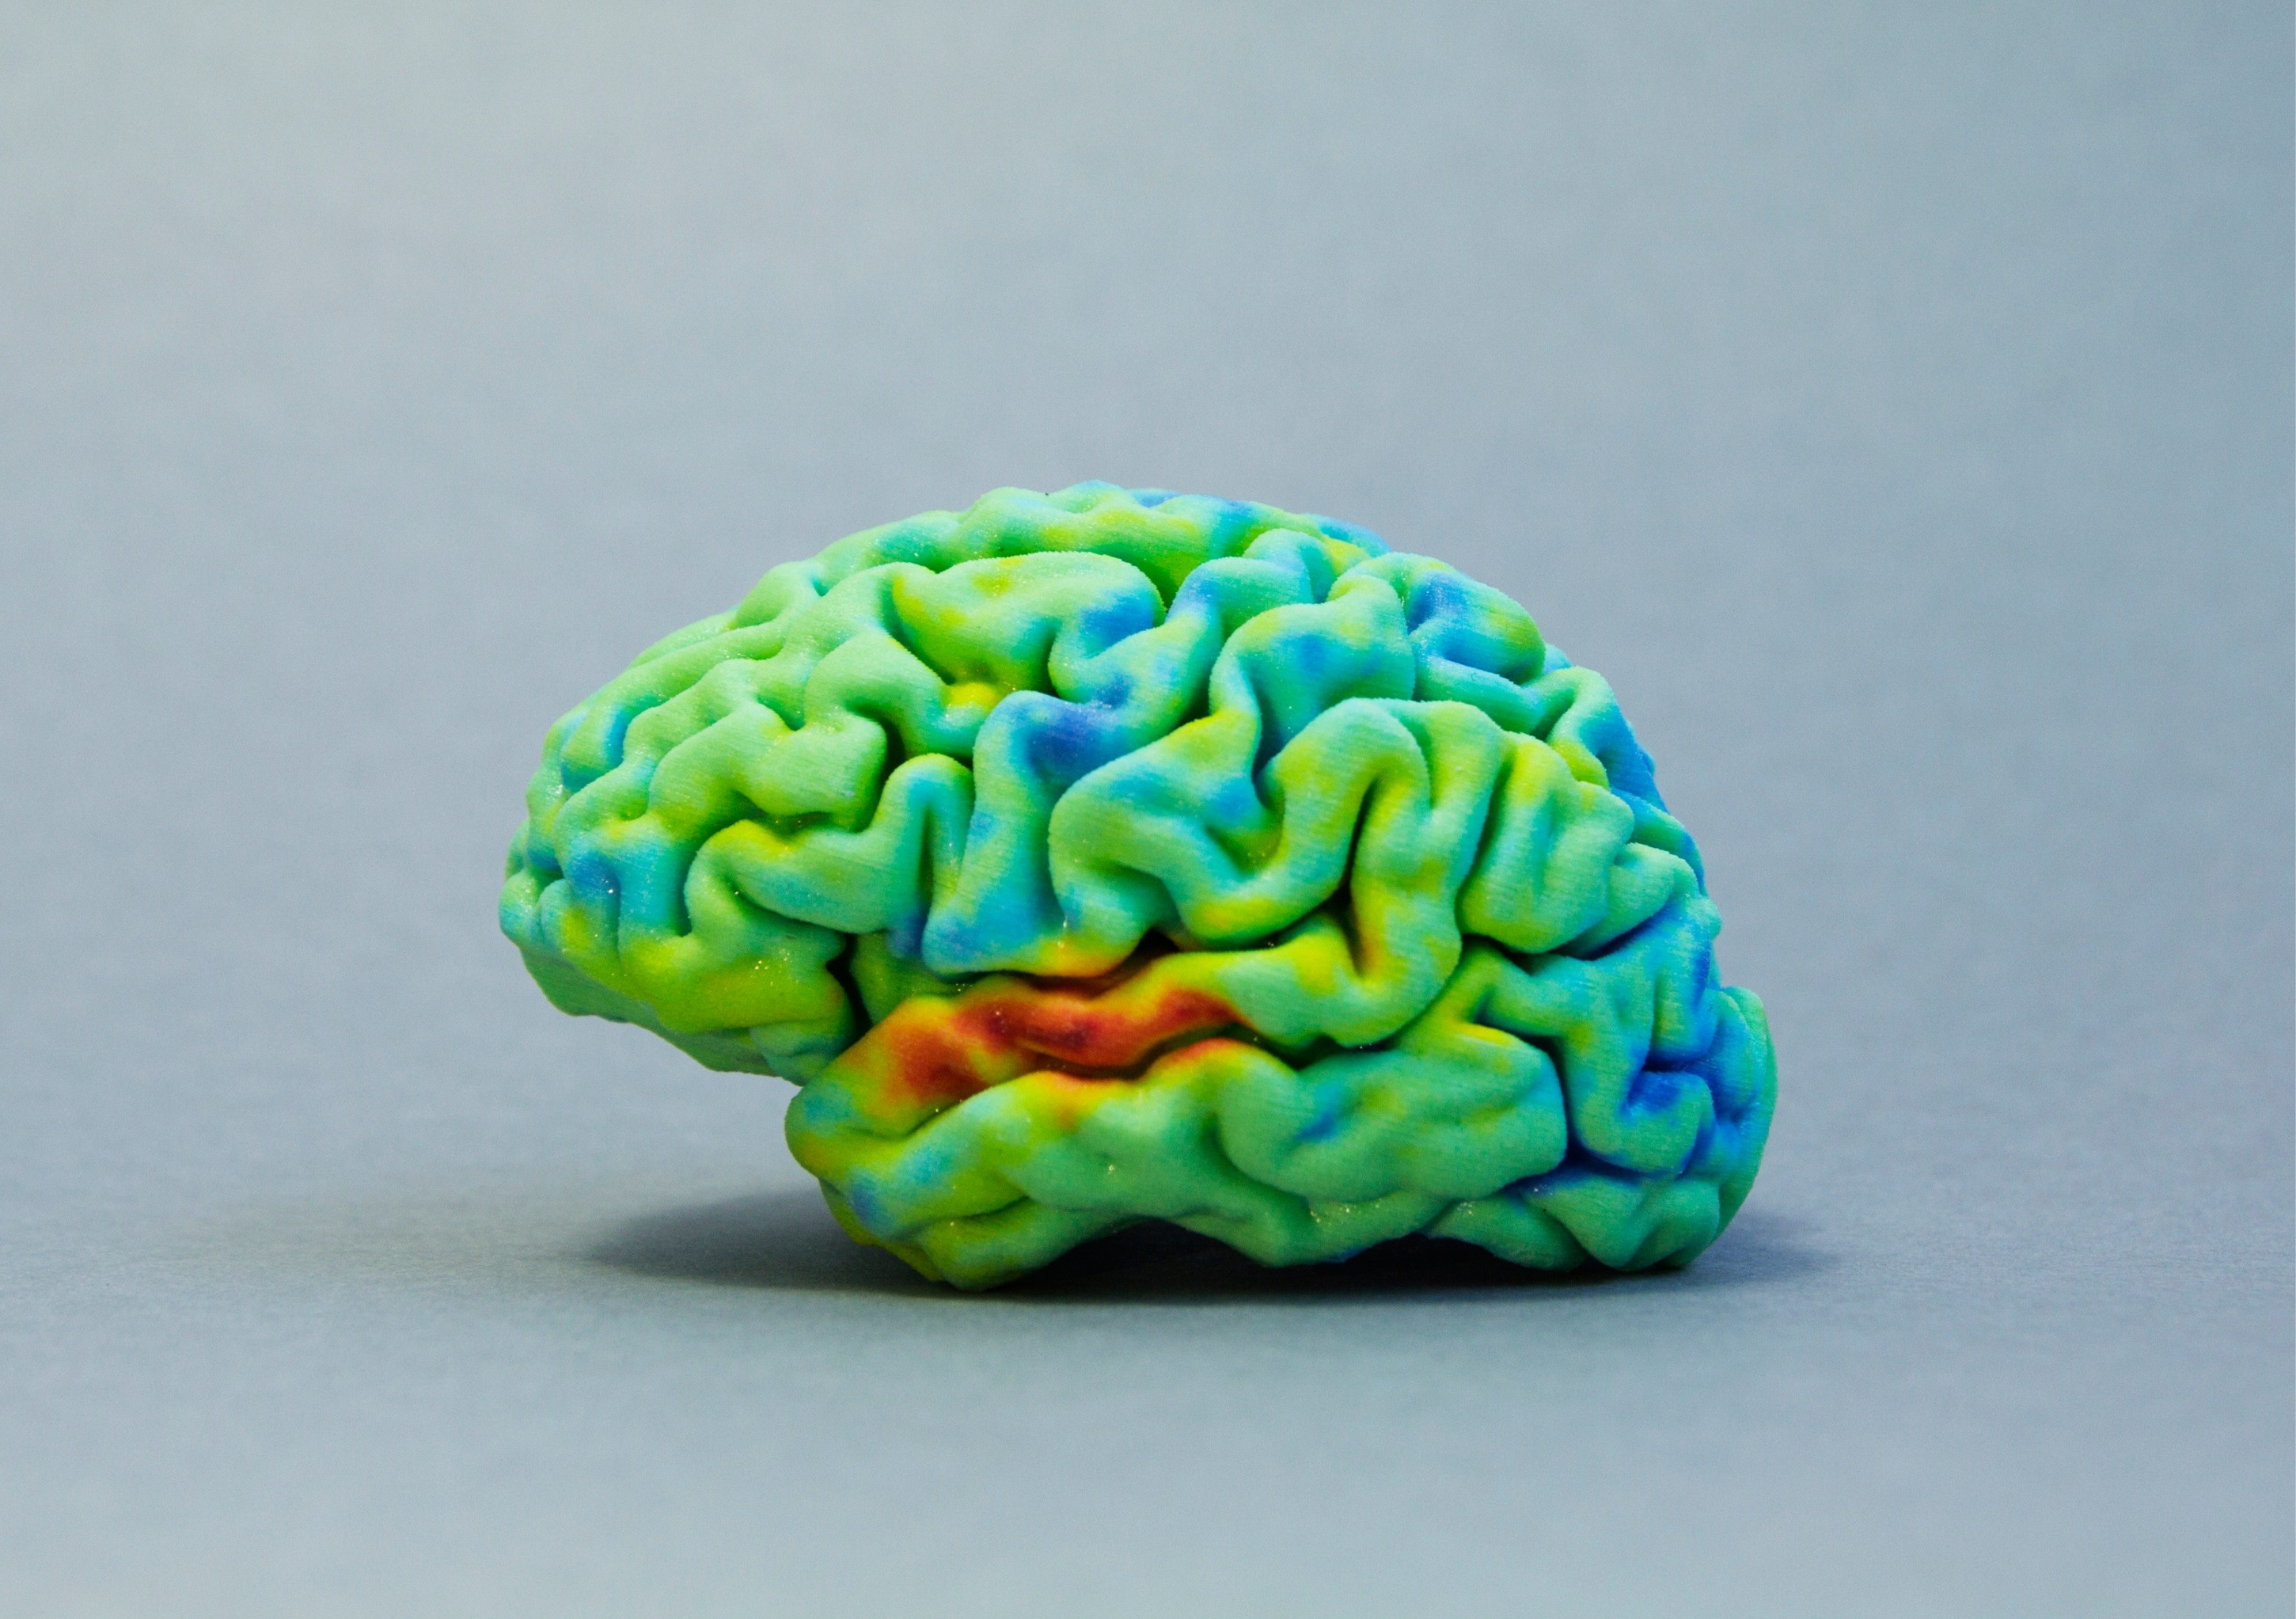 discover the tutorial on how to 3d print your own brain